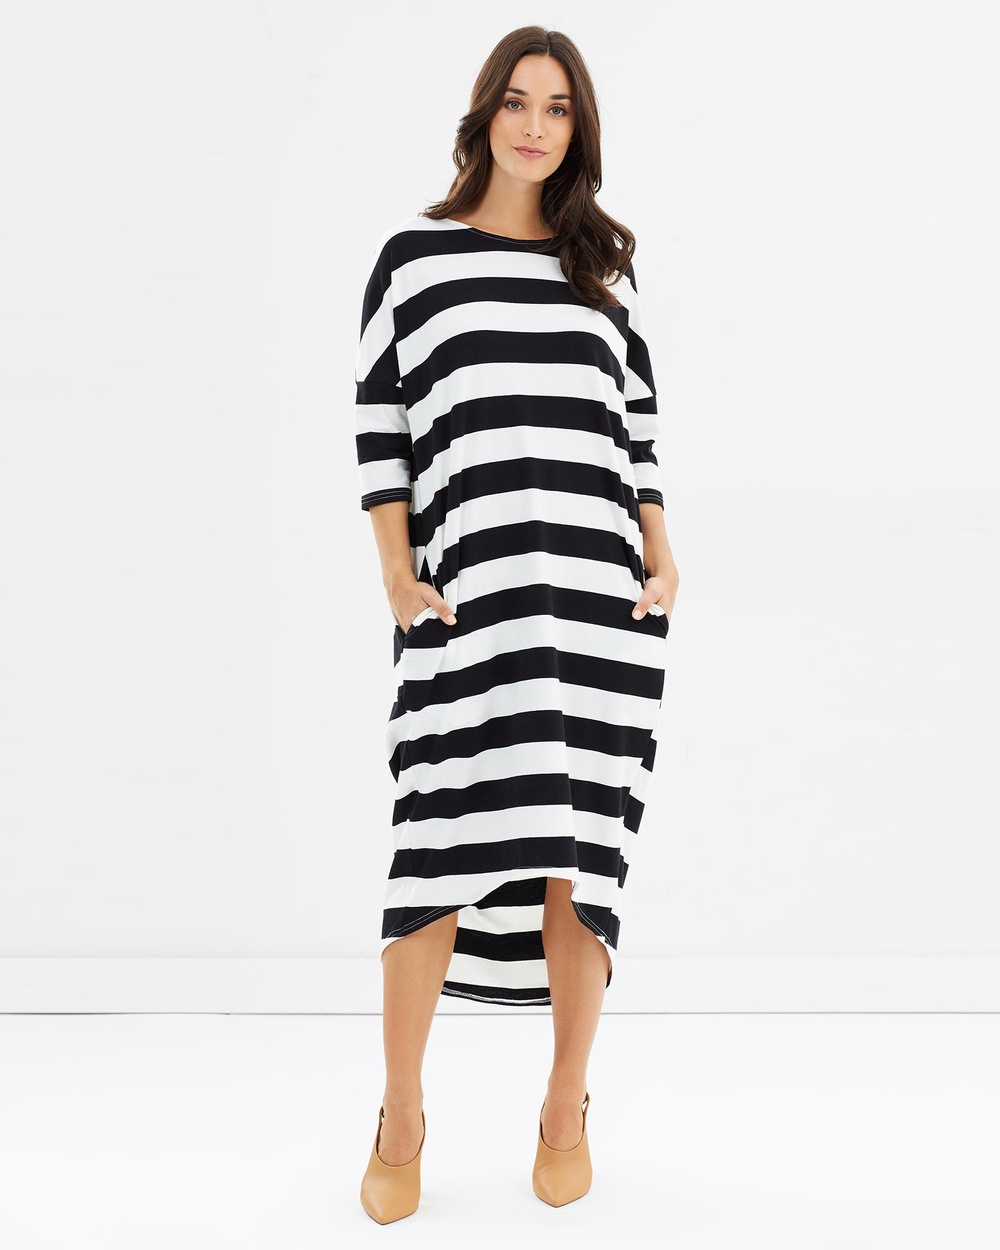 Lincoln St Cocoon Dress Dresses Black Stripe Cocoon Dress